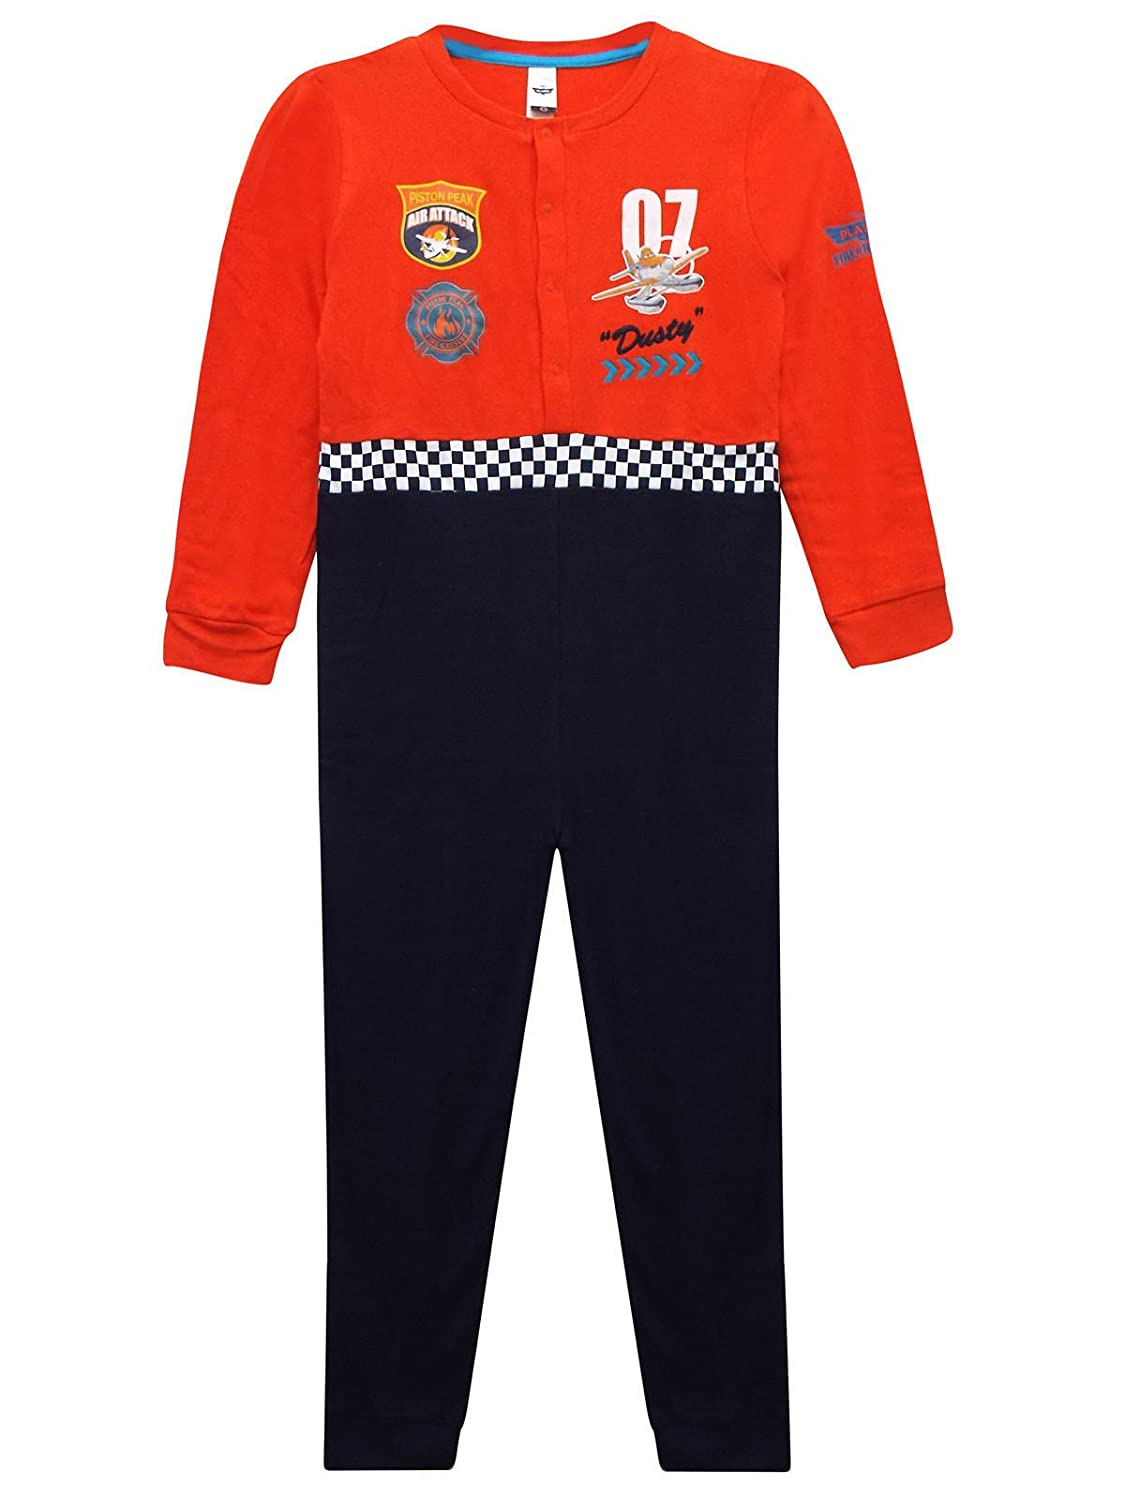 Ex-Store Boys All In One Disney Planes Dusty Air Attack Sleepsuit